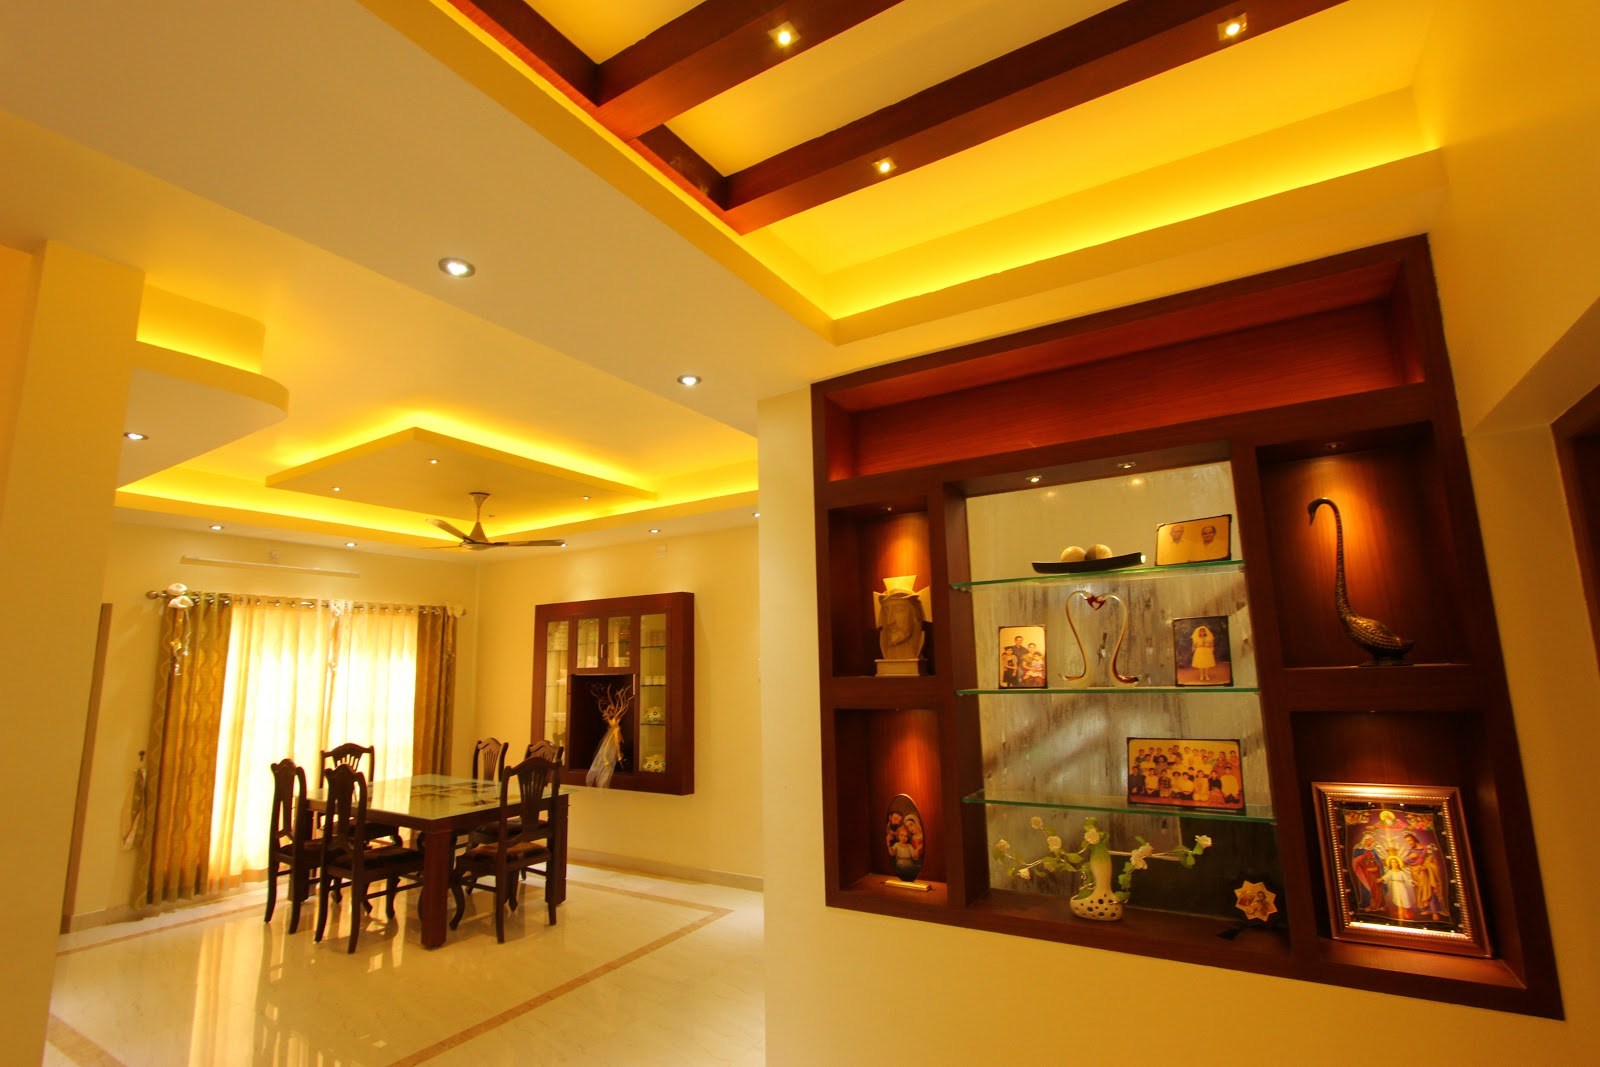 Shilpakala interiors award winning home interior design for Home inner design